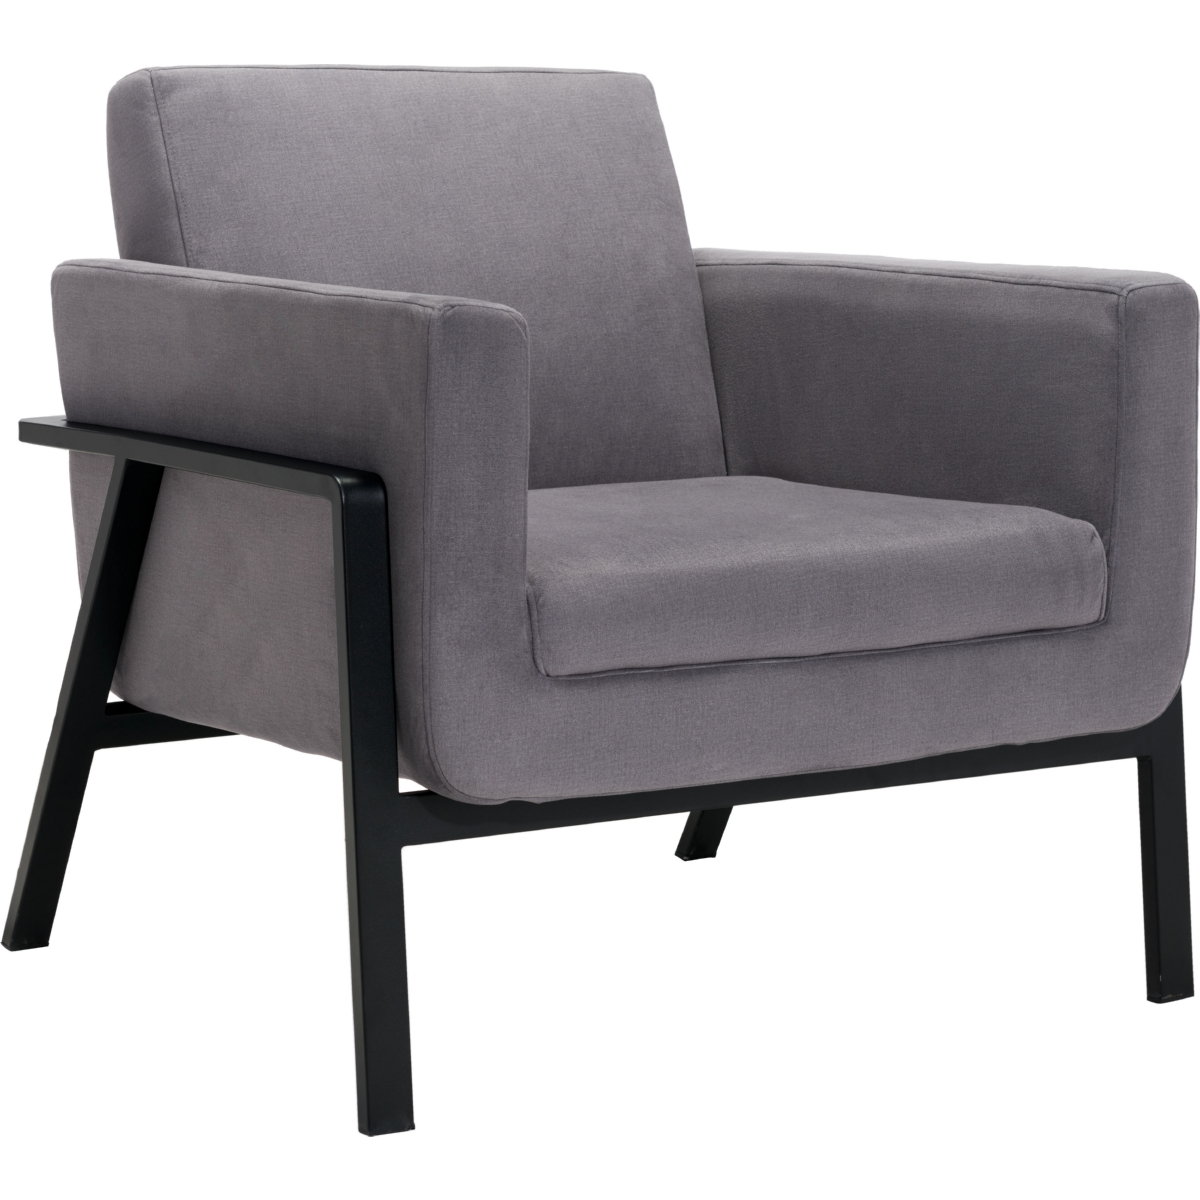 zuo swivel chair french dining chairs uk modern furniture 100765 homestead lounge in gray